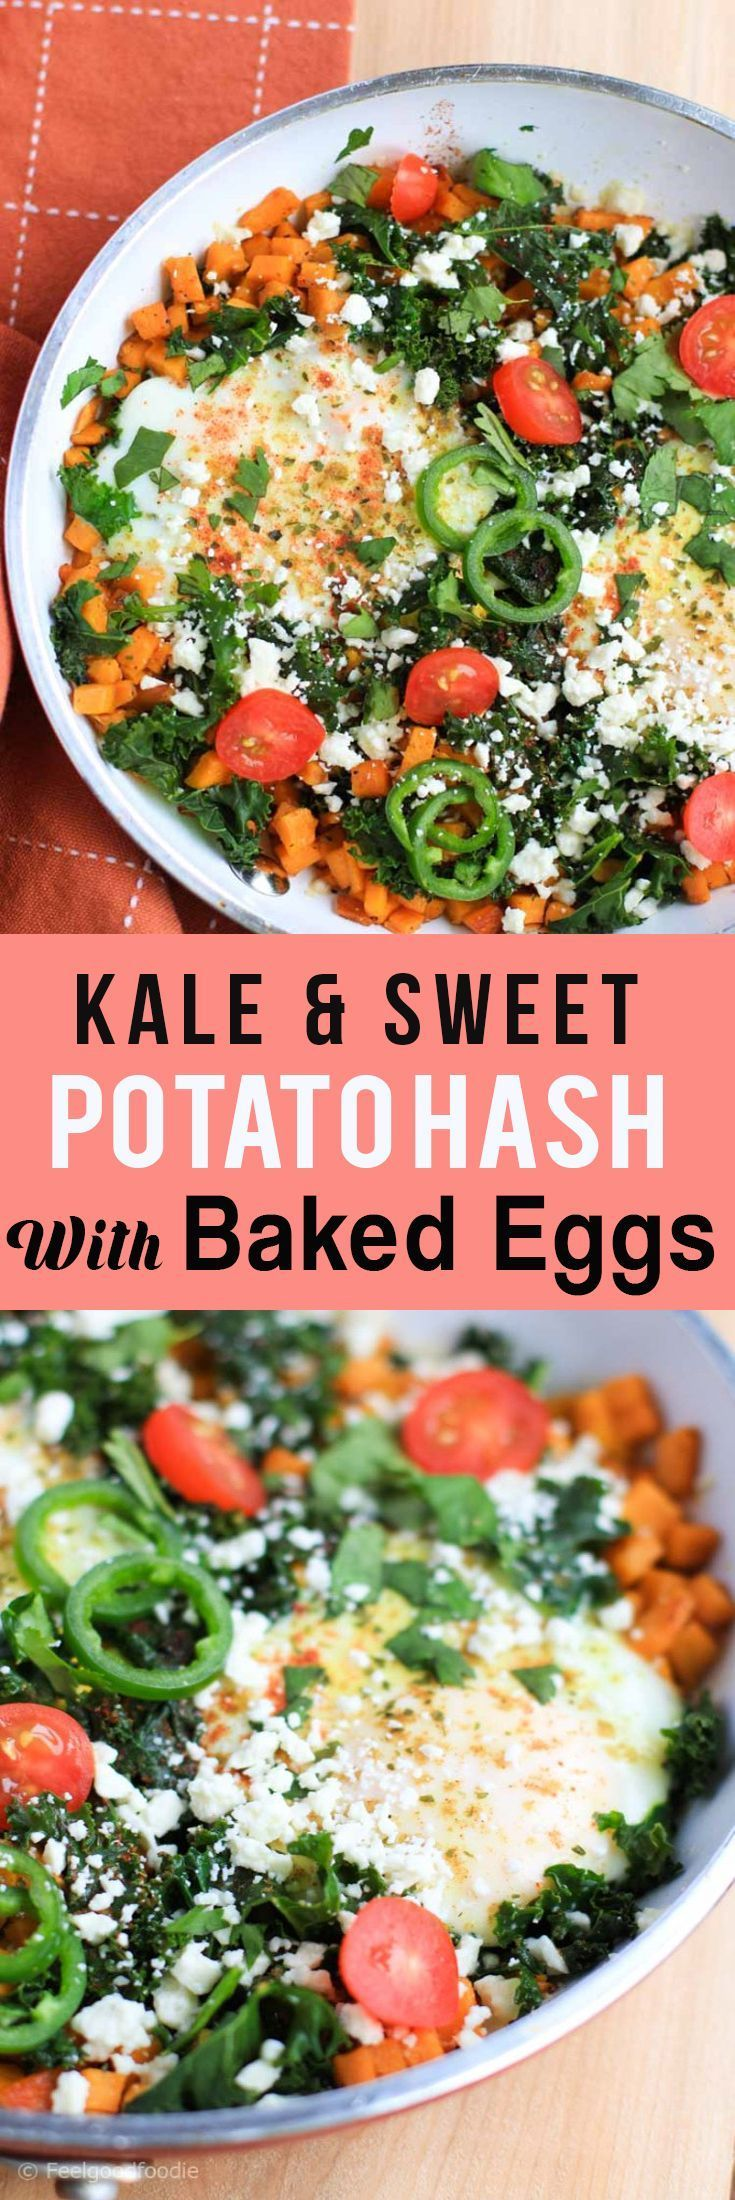 Us potato cuts jpg thanksgiving dinner at restaurant 9501 - Kale Sweet Potato Hash With Baked Eggs